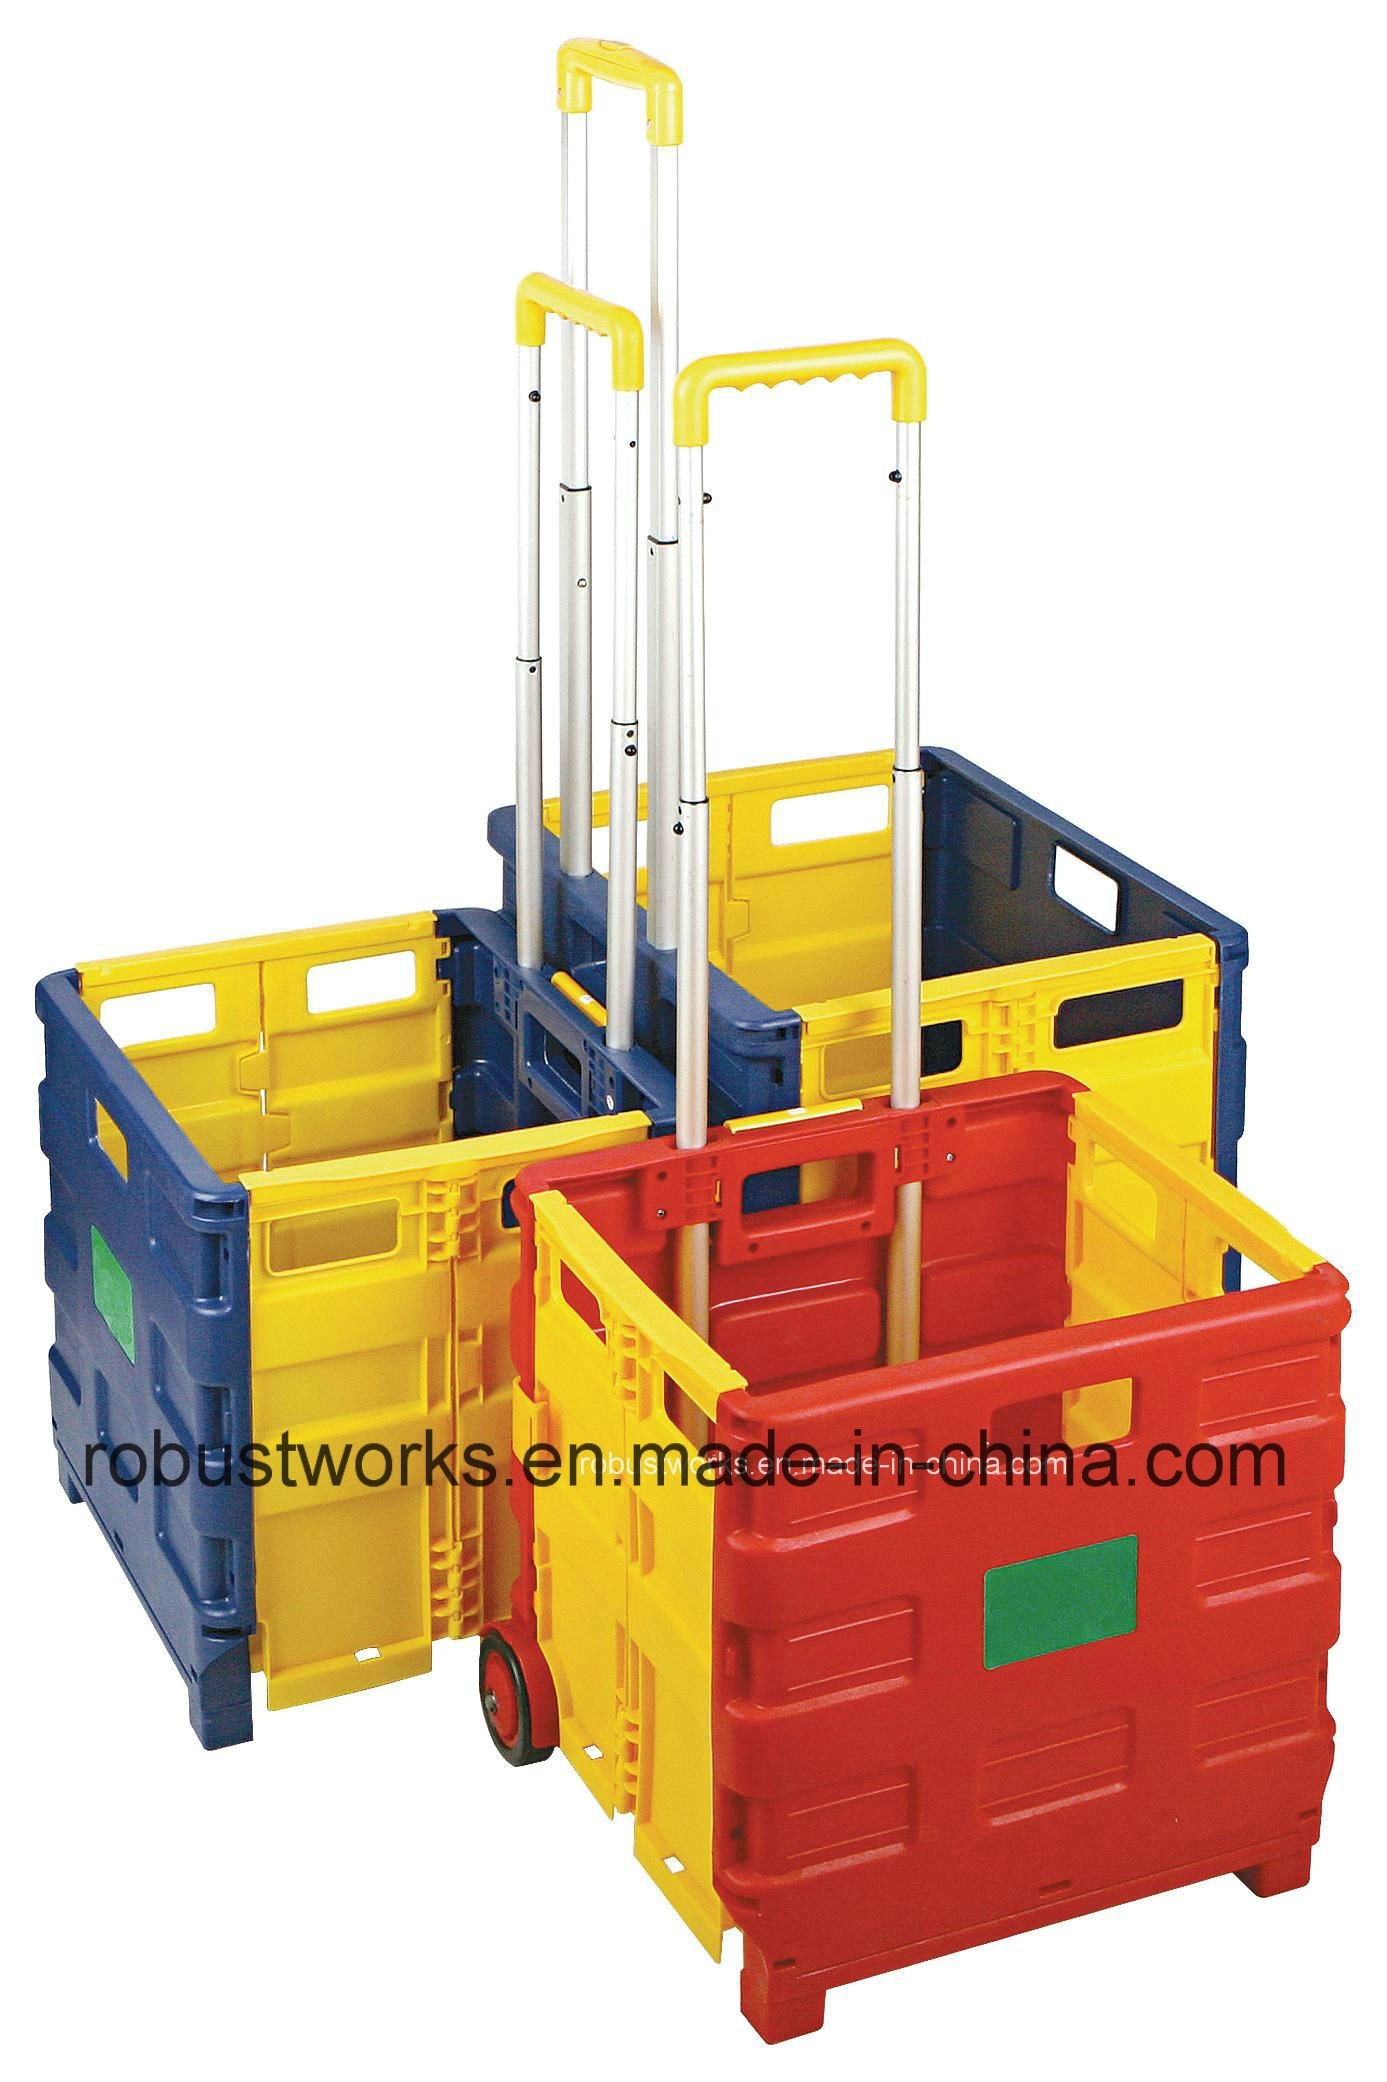 Plastic Folding Shopping Cart (FC403BR-2)